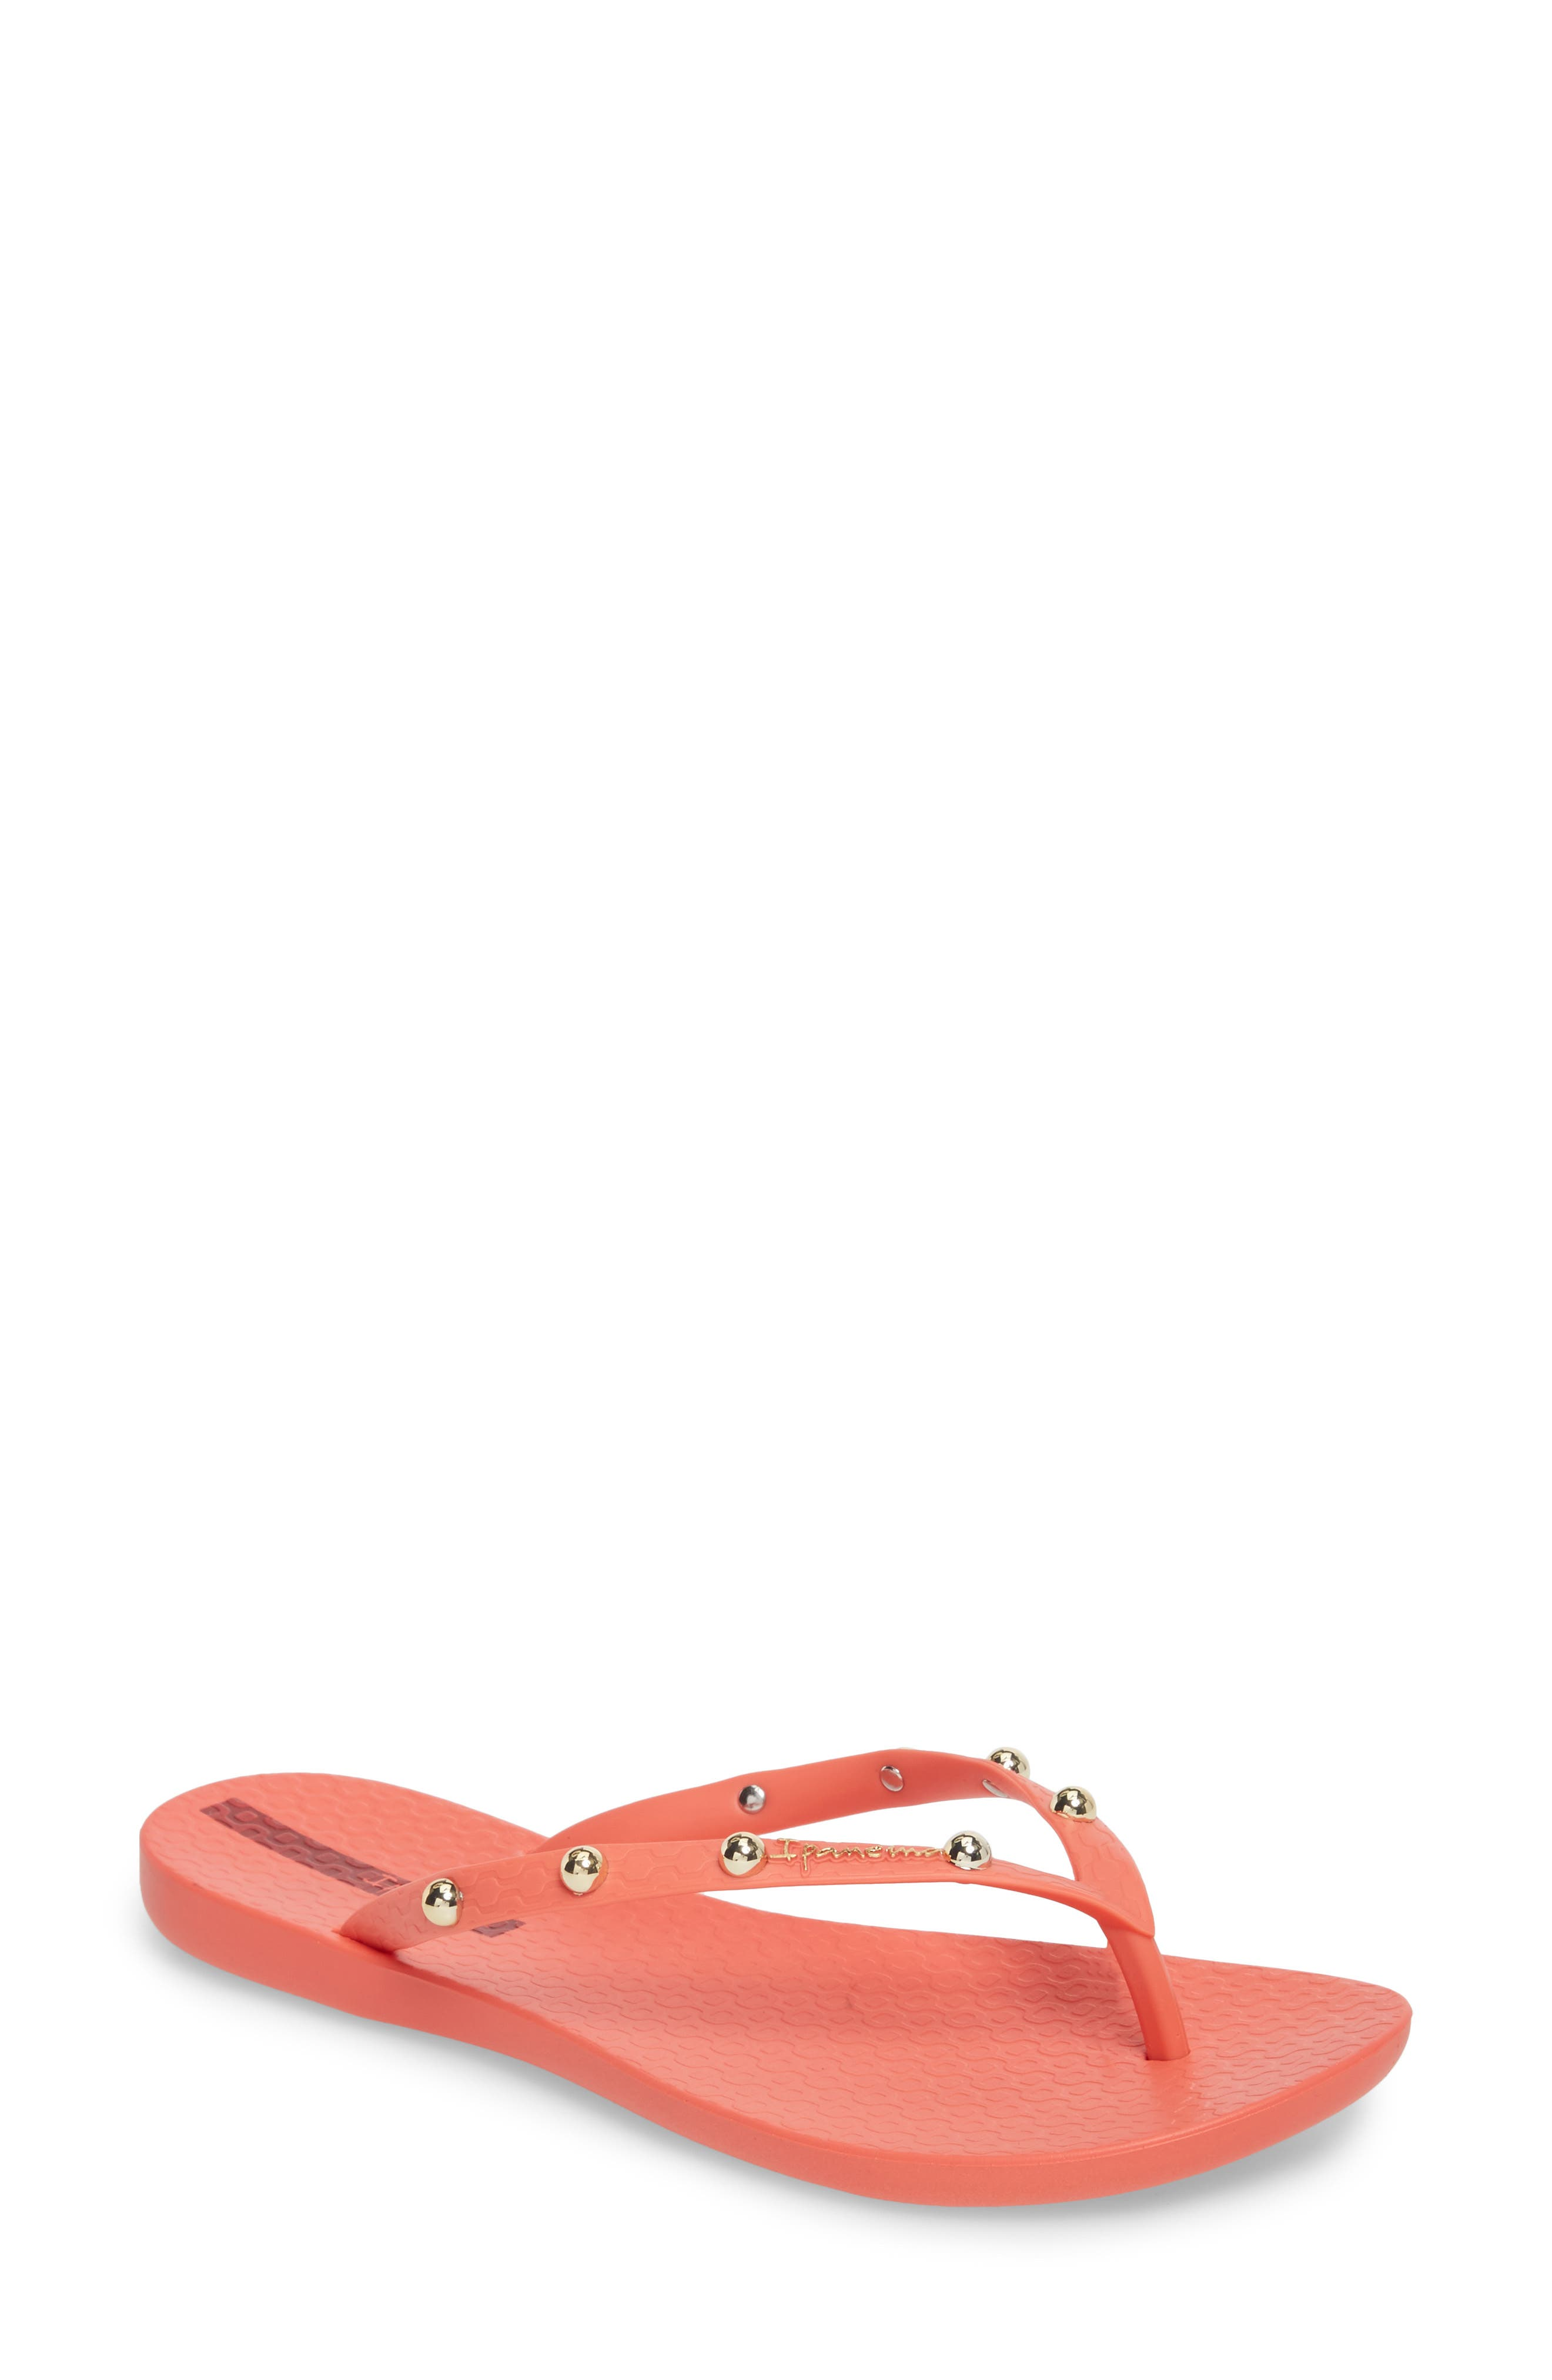 Alternate Image 1 Selected - Ipanema Wave Studs Flip Flop (Women)